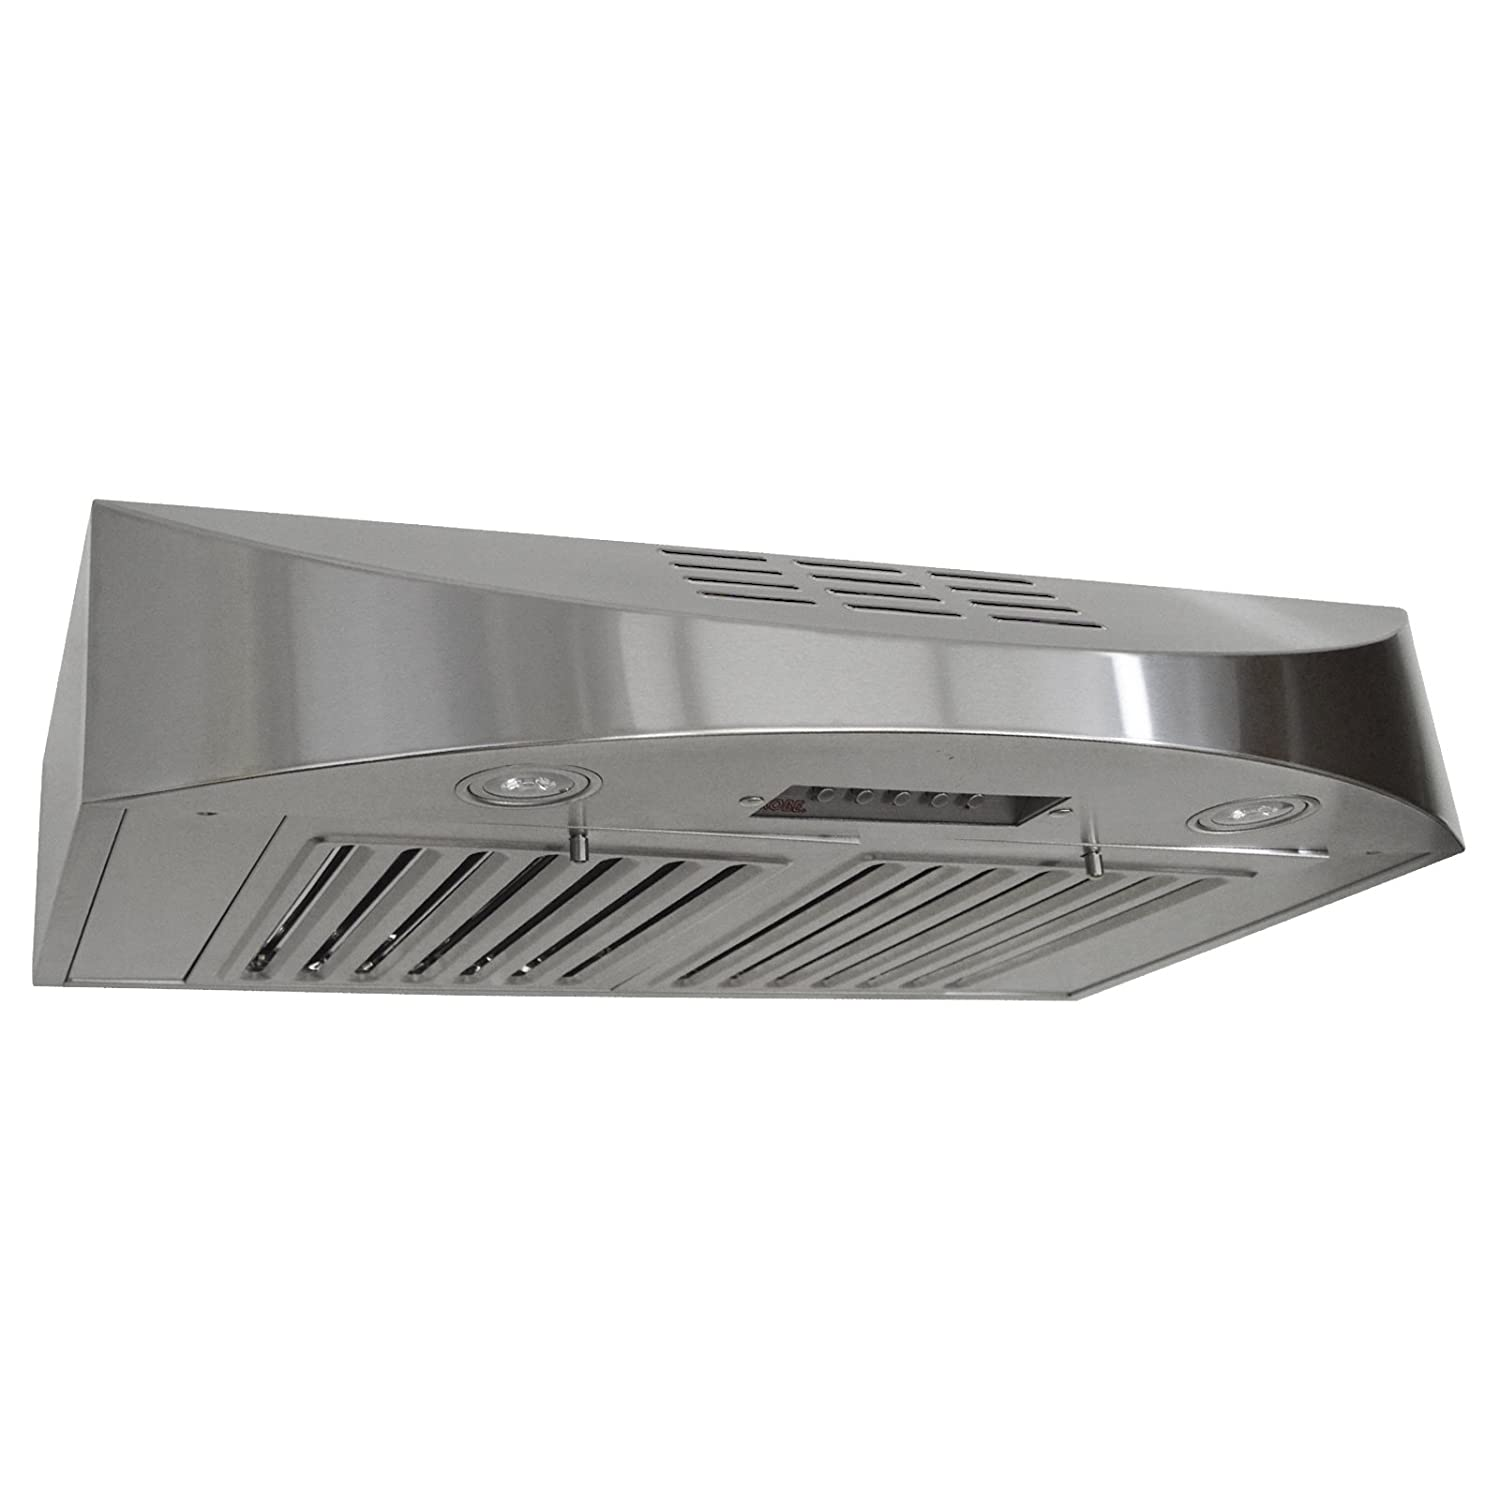 Ordinaire Amazon.com: KOBE CHX3830SQBD 3 Brillia 30 Inch Ductless Under Cabinet Range  Hood, 3 Speed, 400 CFM, LED Lights, Baffle Filters: Home Improvement